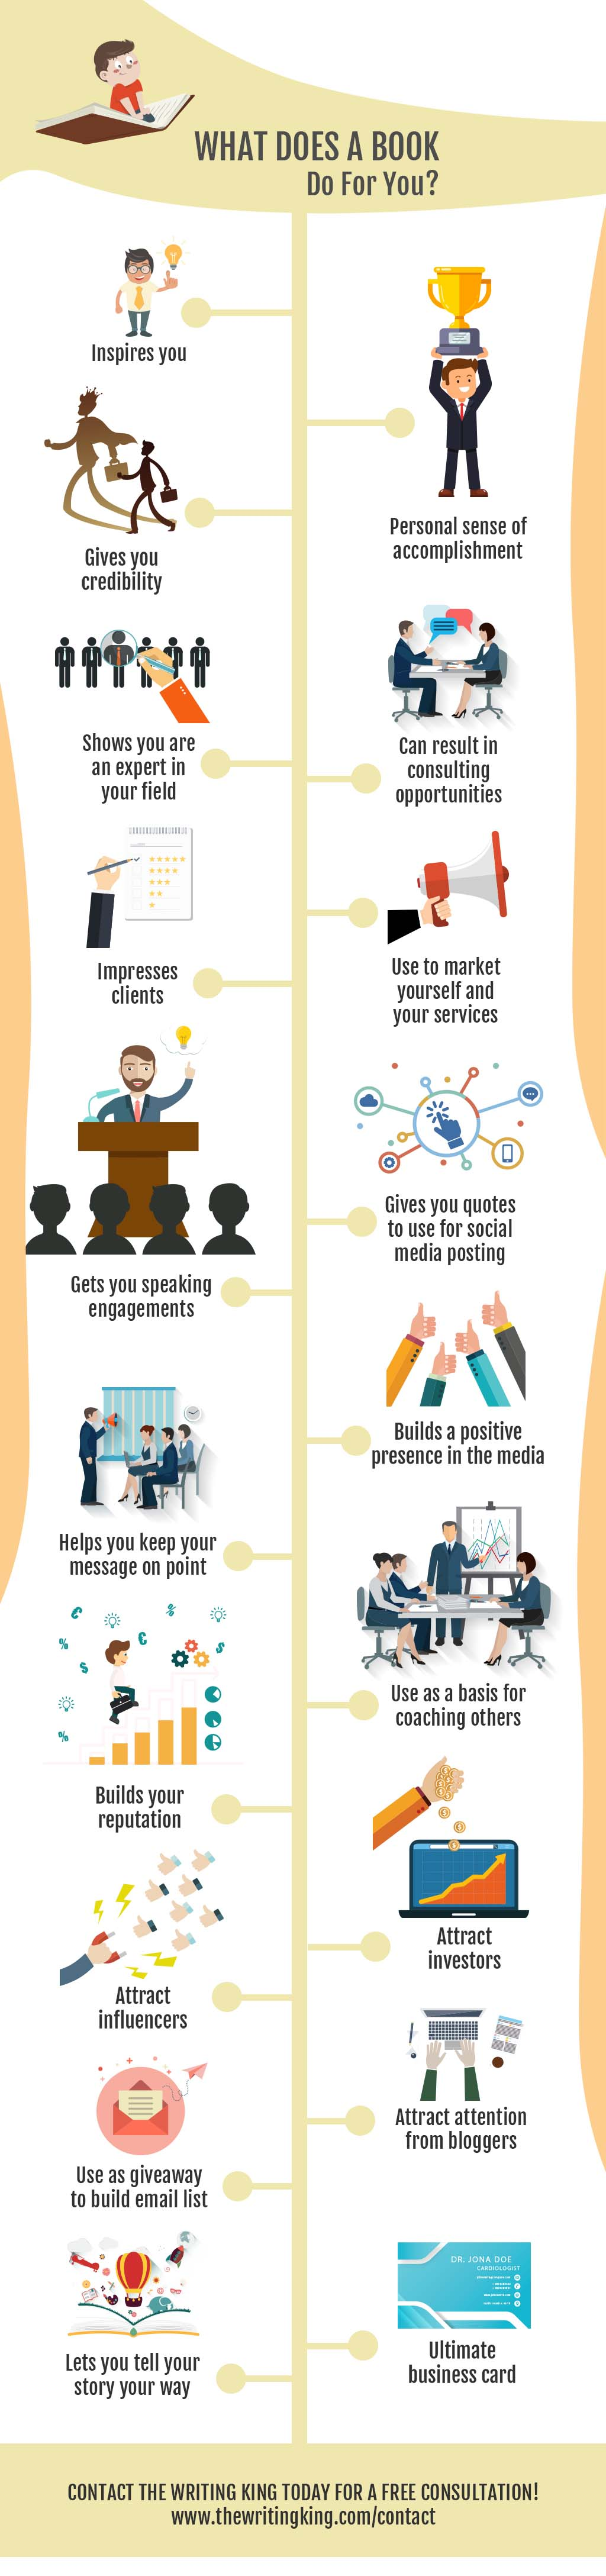 What does a book do for you? infographic screen